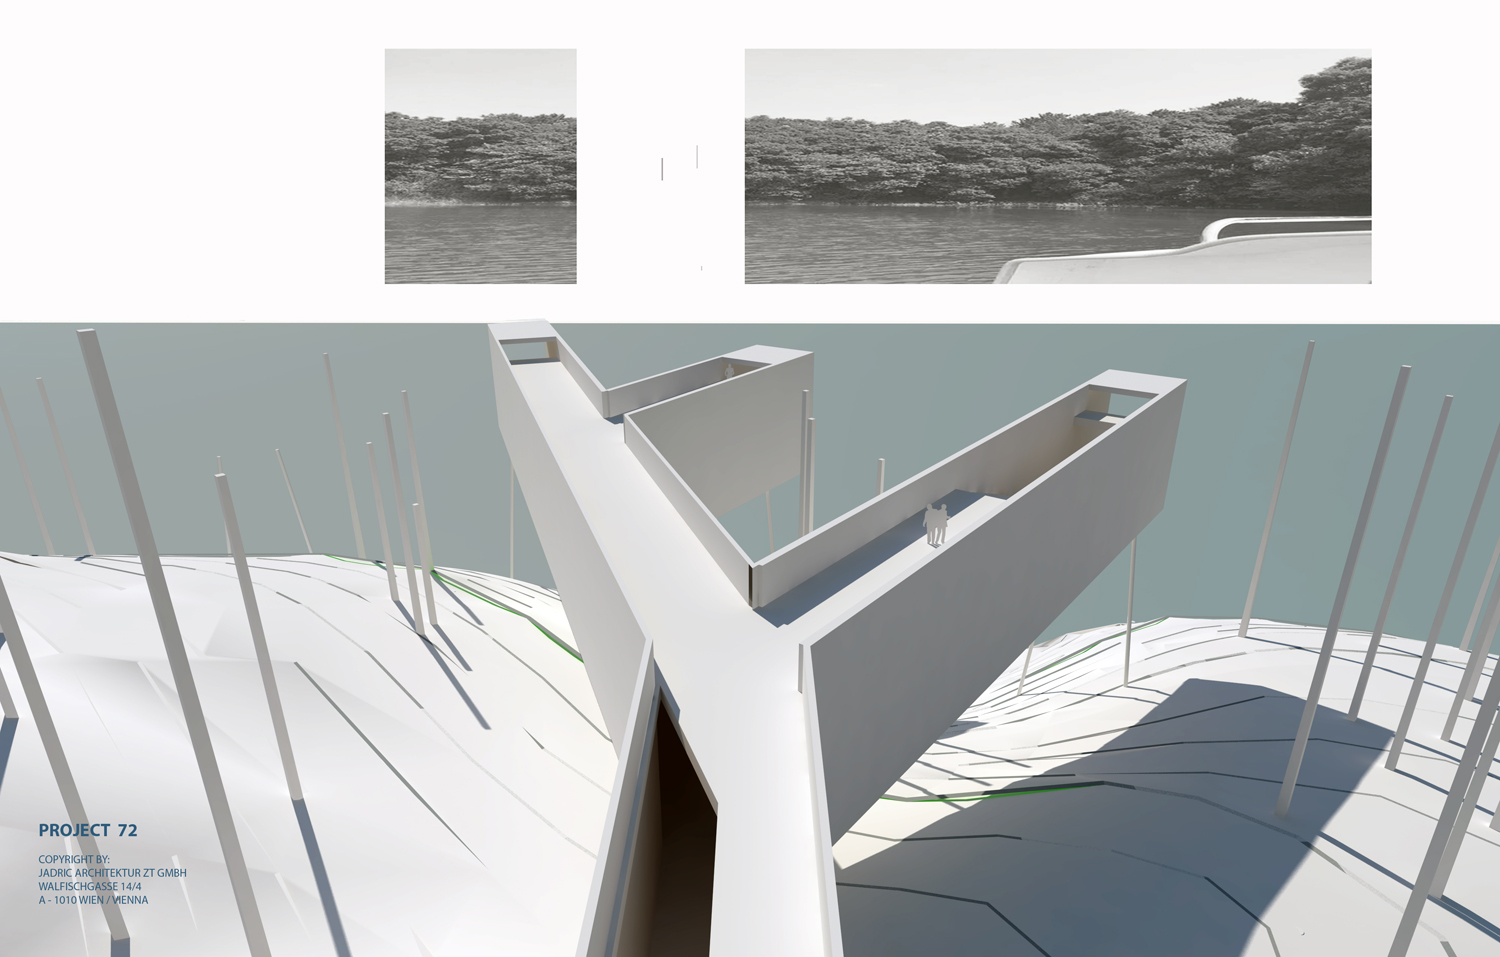 THE VIEW-CONCEPT SKETCH OF LABORATORY FOR VERNACULAR ARCHITECTURE AND ART & SKYWALK © 2018 JADRIC ARCHITEKTUR ZT GMBH - All Rights Reserved }